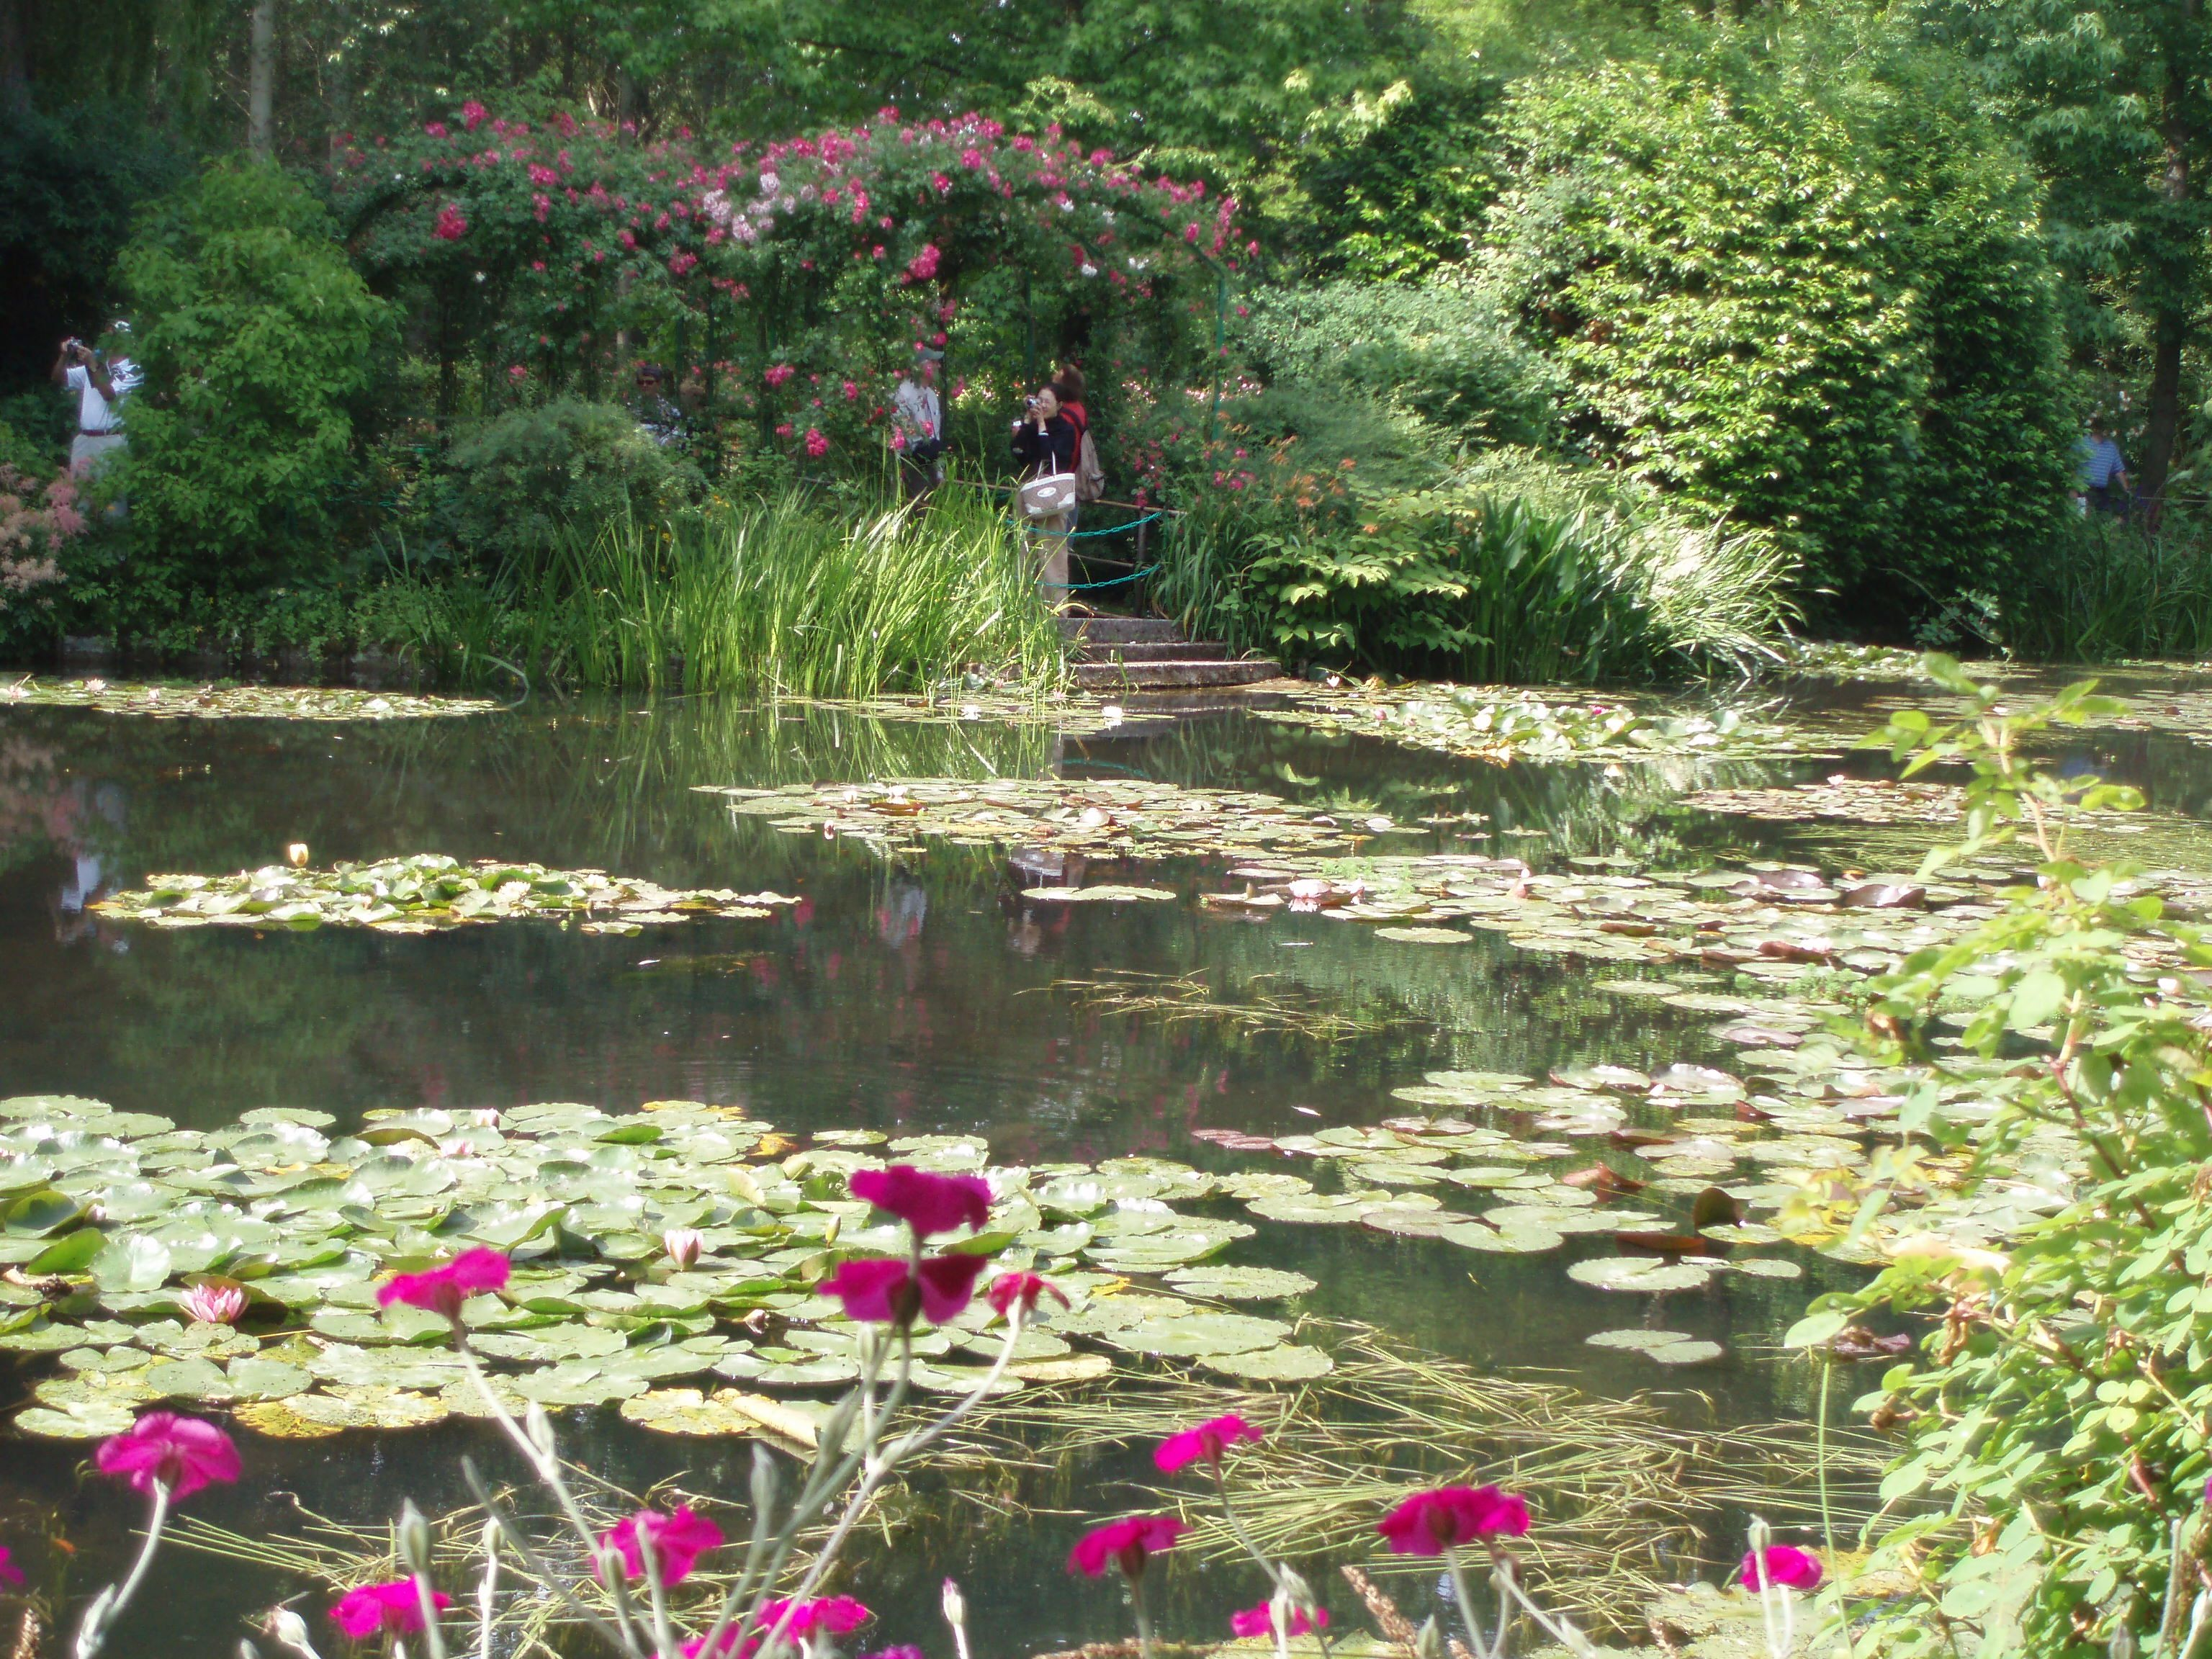 Water garden of monet 39 s house in giverny france paris city vision pariscityvision for Monet s garden france